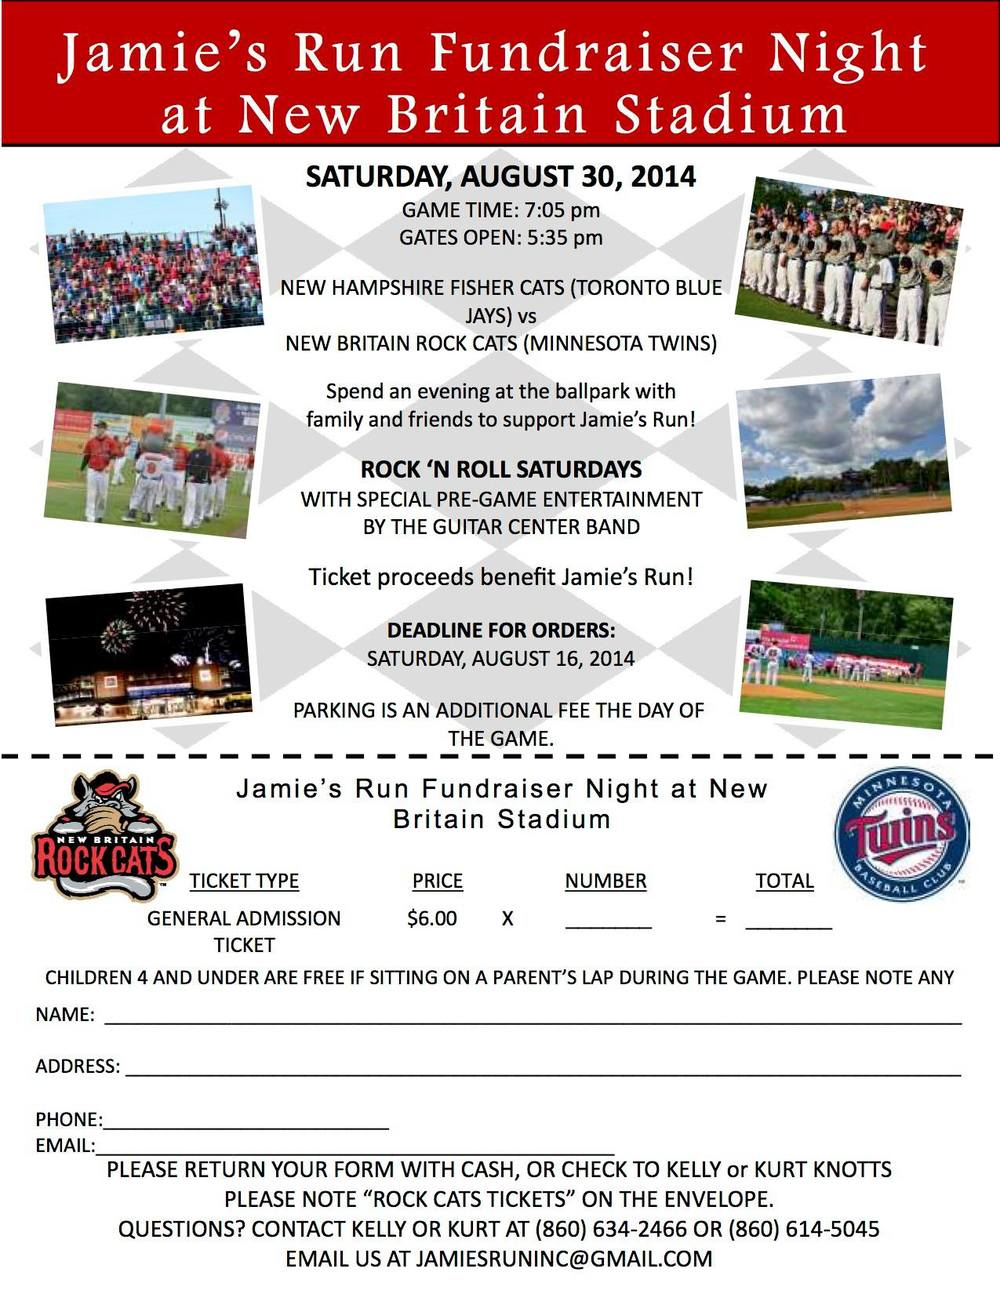 We are the featured charity at the New Britain Rock Cats game Saturday August 30th! Purchase your tickets through us at jamiesruninc@gmail.com or 860-614-5045. Cash, checks, or Charge. Only $6 per ticket!!!!